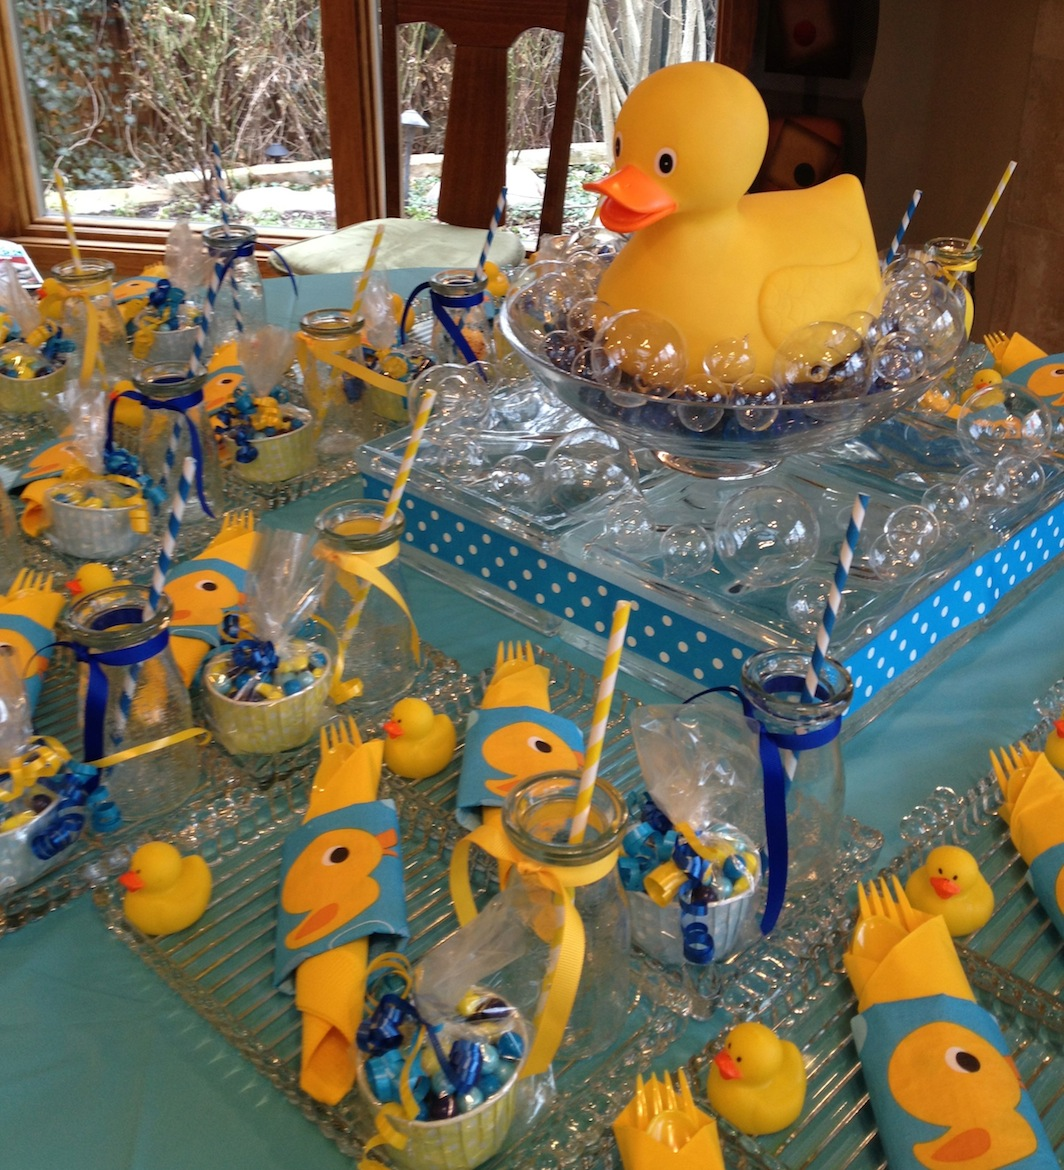 displaying images for rubber ducky baby shower centerpiece ideas